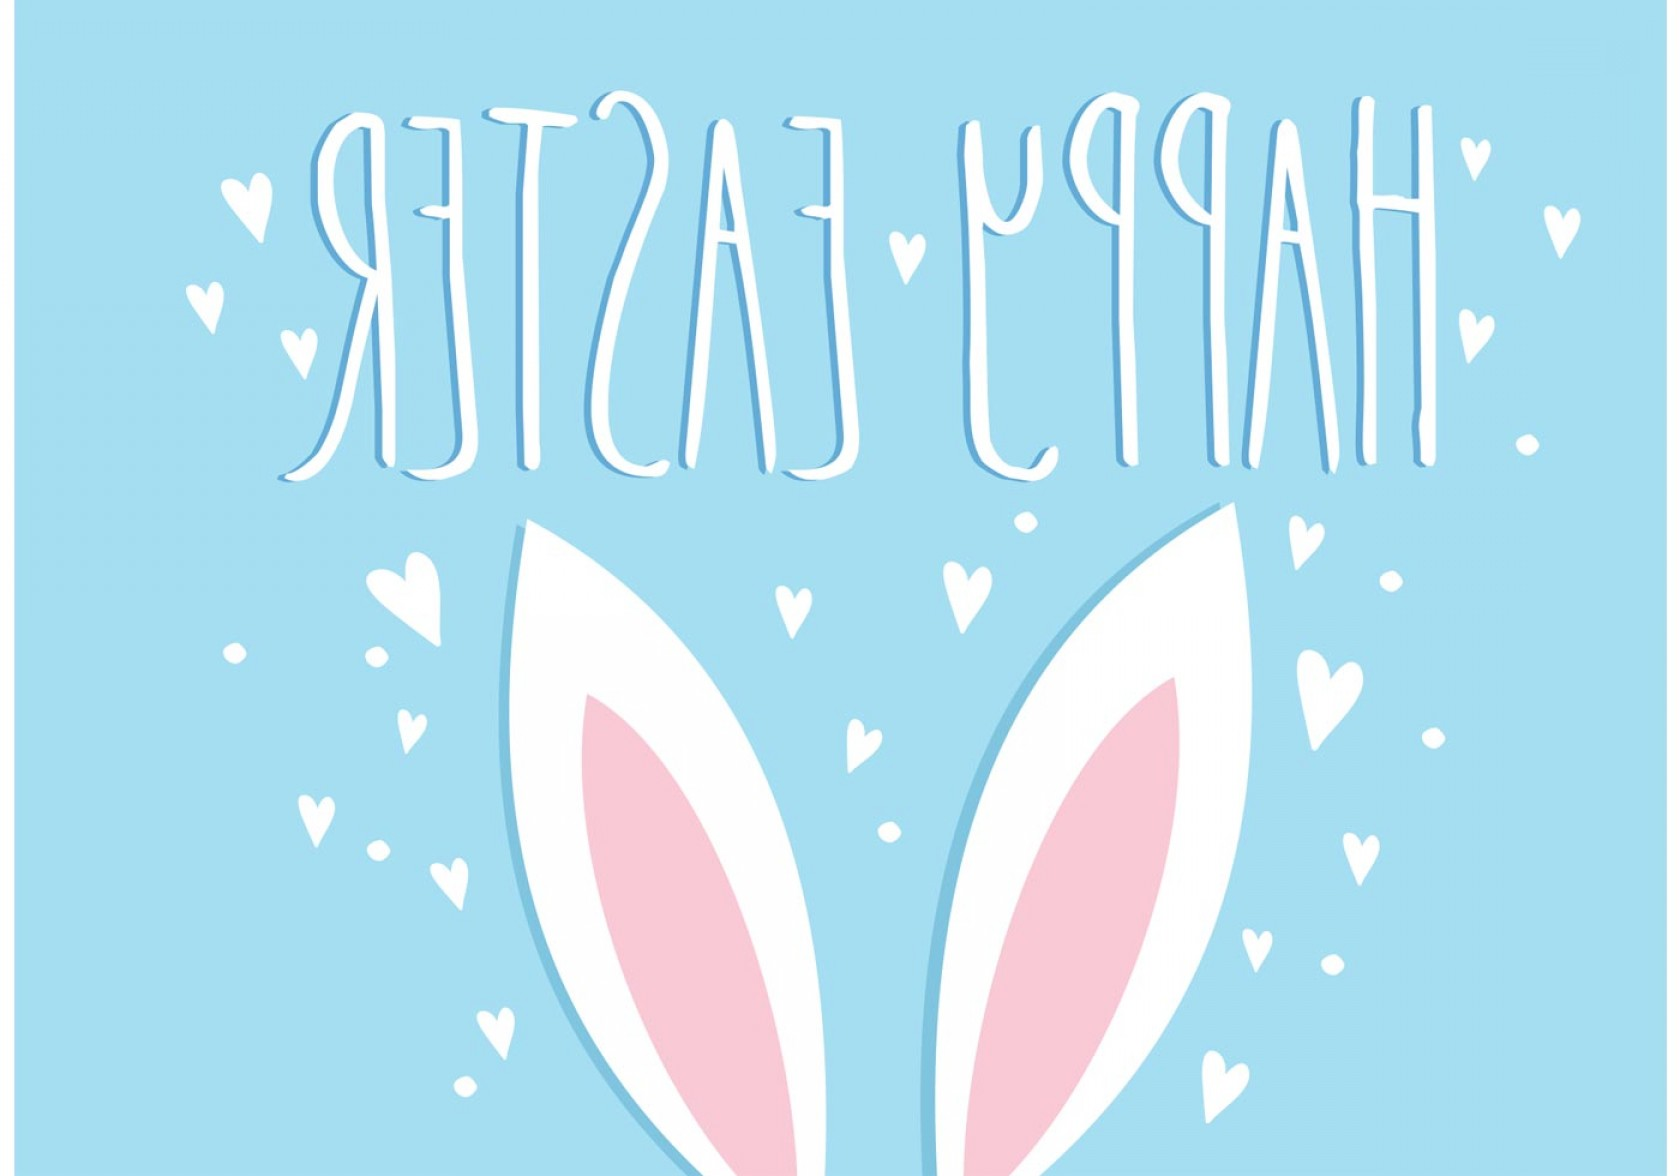 Easter Vector Art No Background: Easter Bunny Ears Vector Illustration